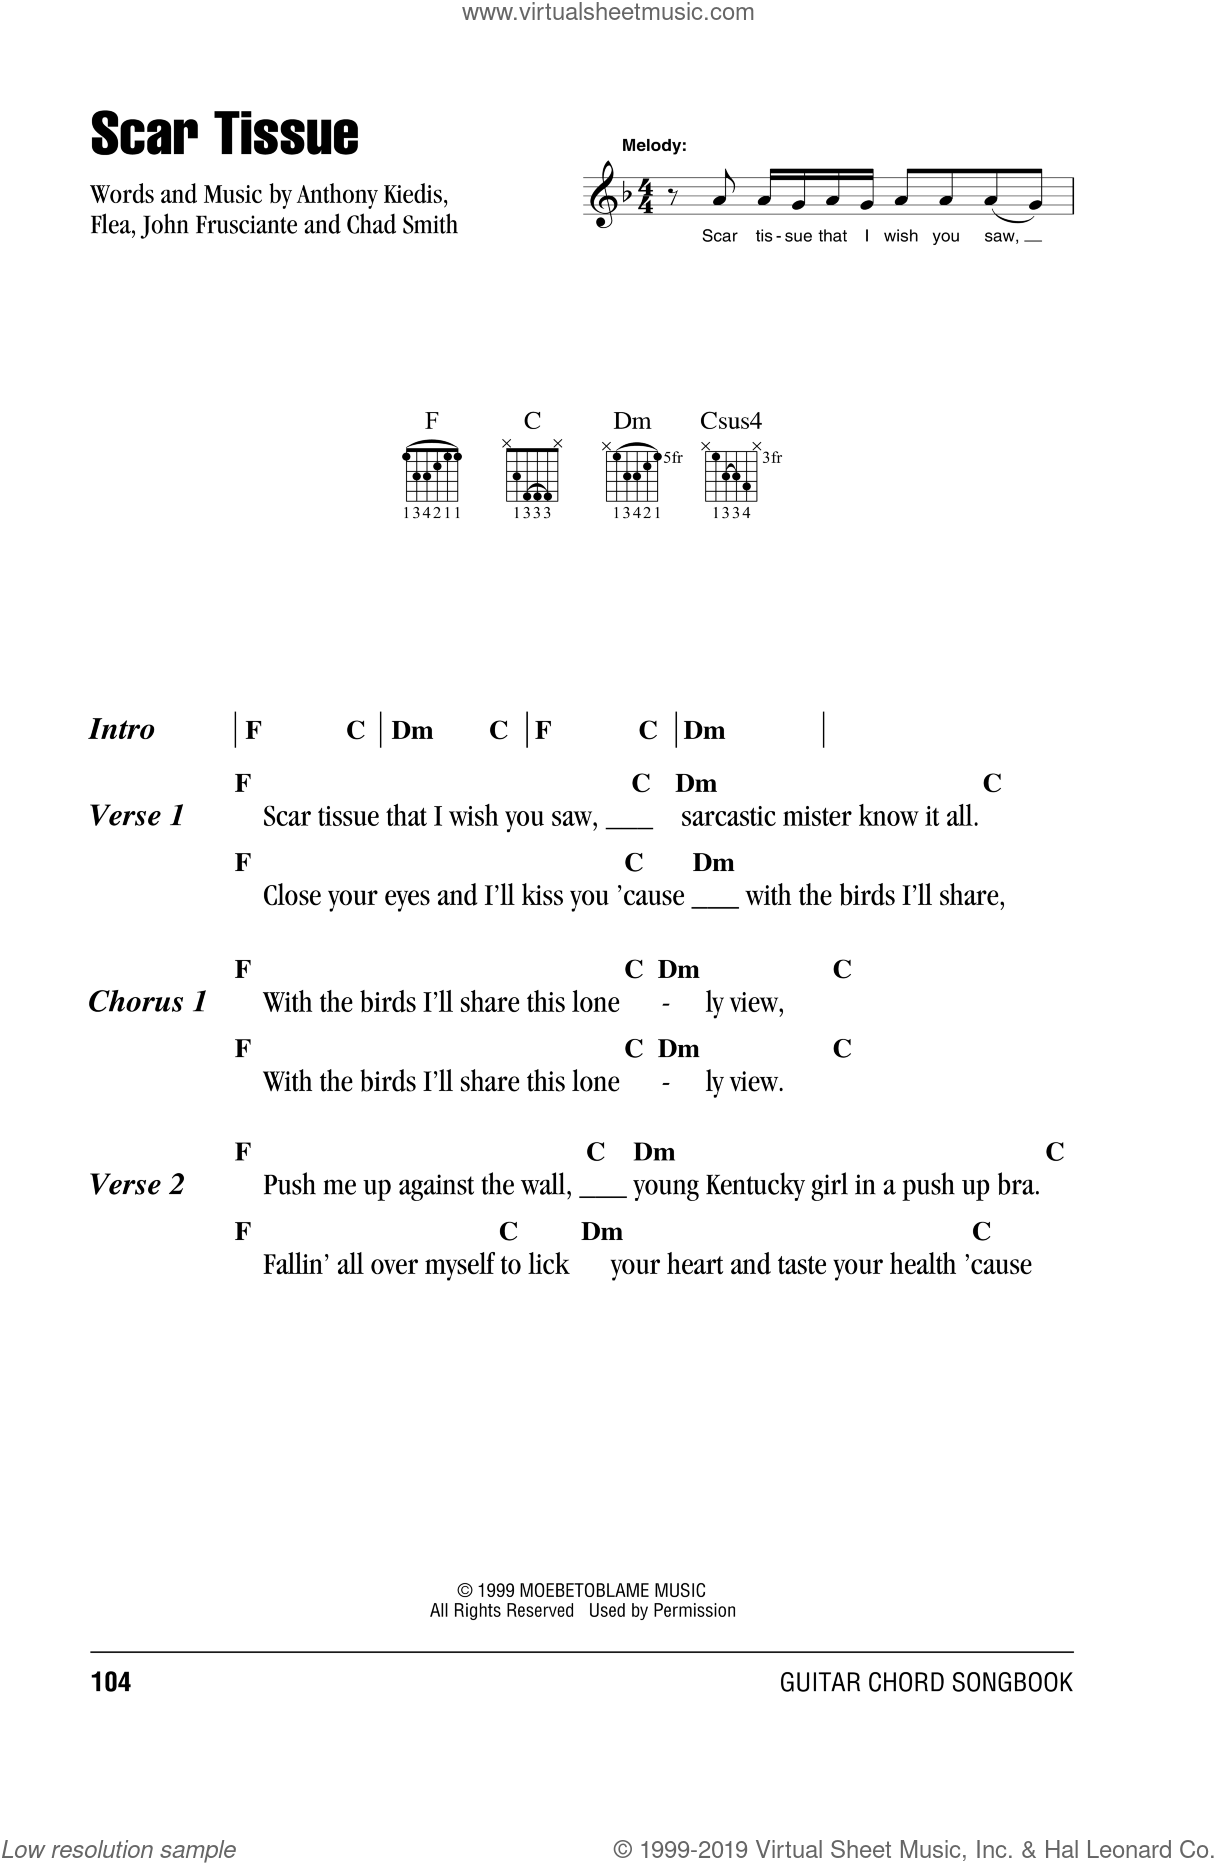 Scar Tissue sheet music for guitar (chords) by John Frusciante, Red Hot Chili Peppers and Flea. Score Image Preview.